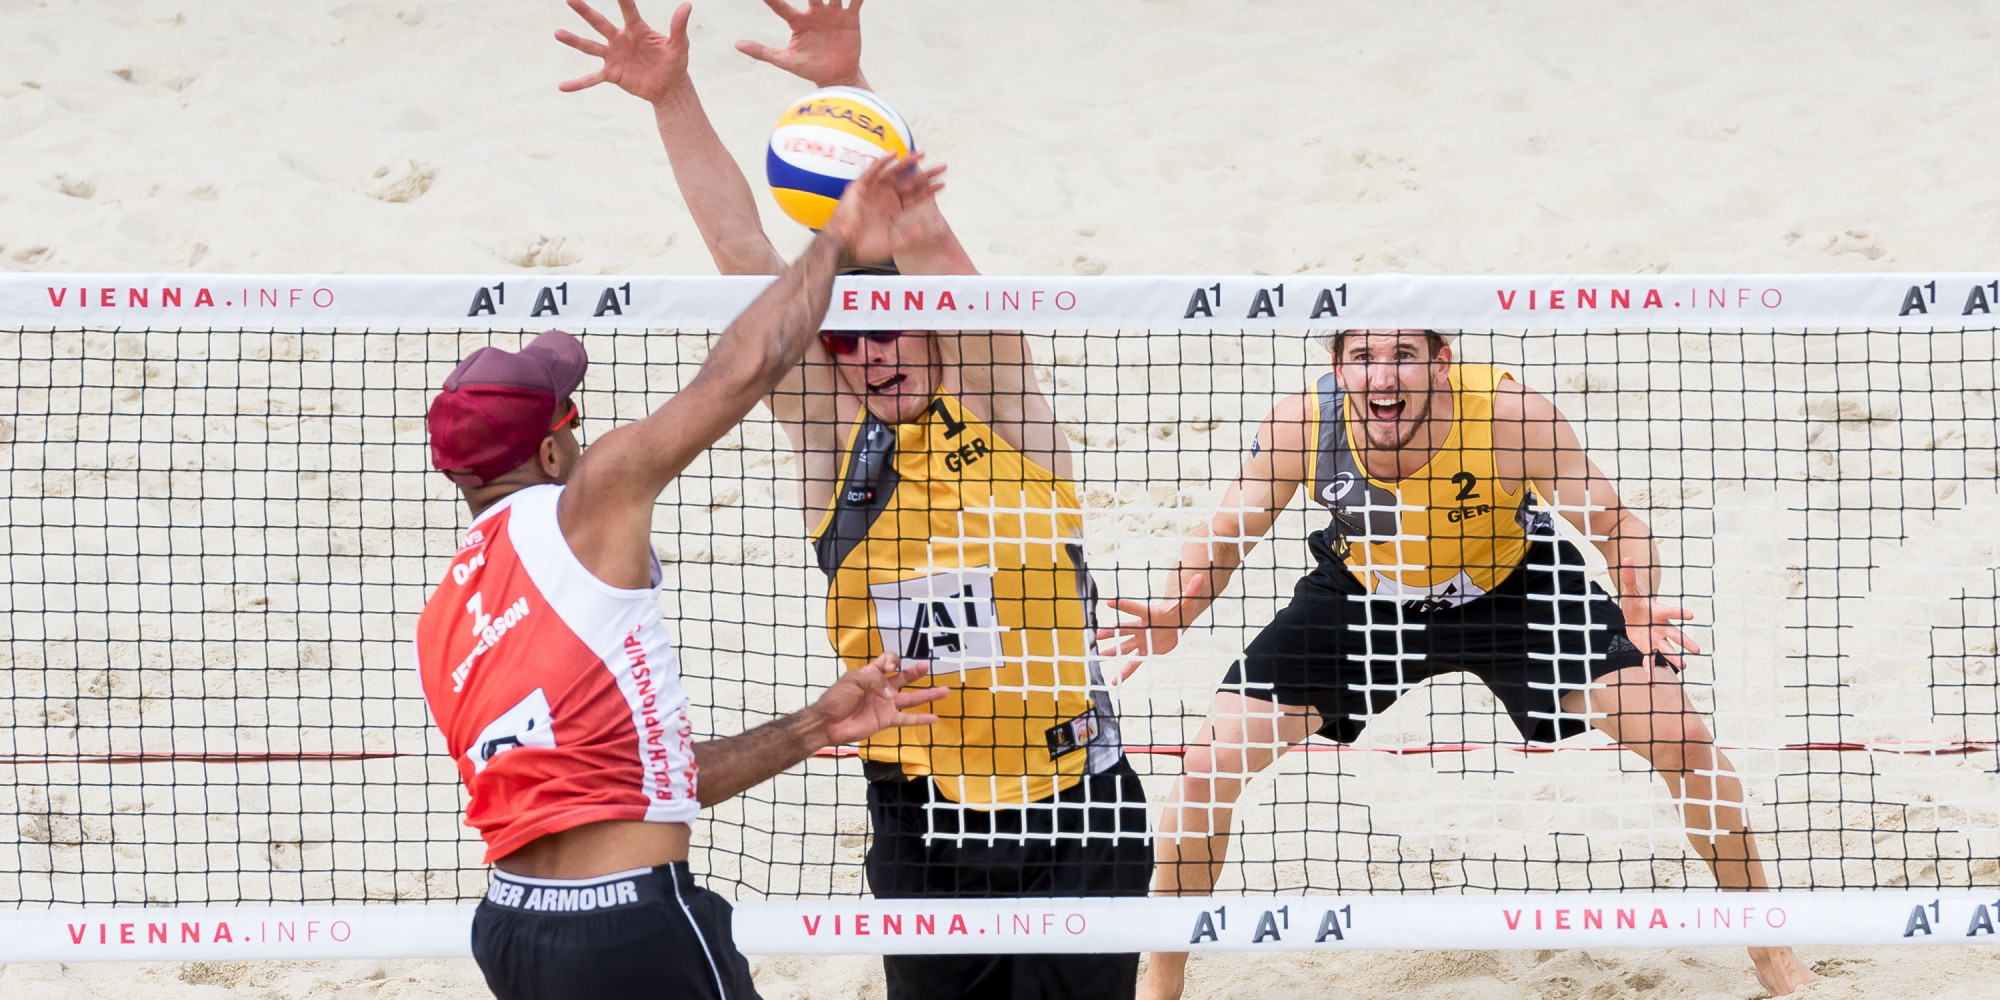 beachvolleyball wm live stream